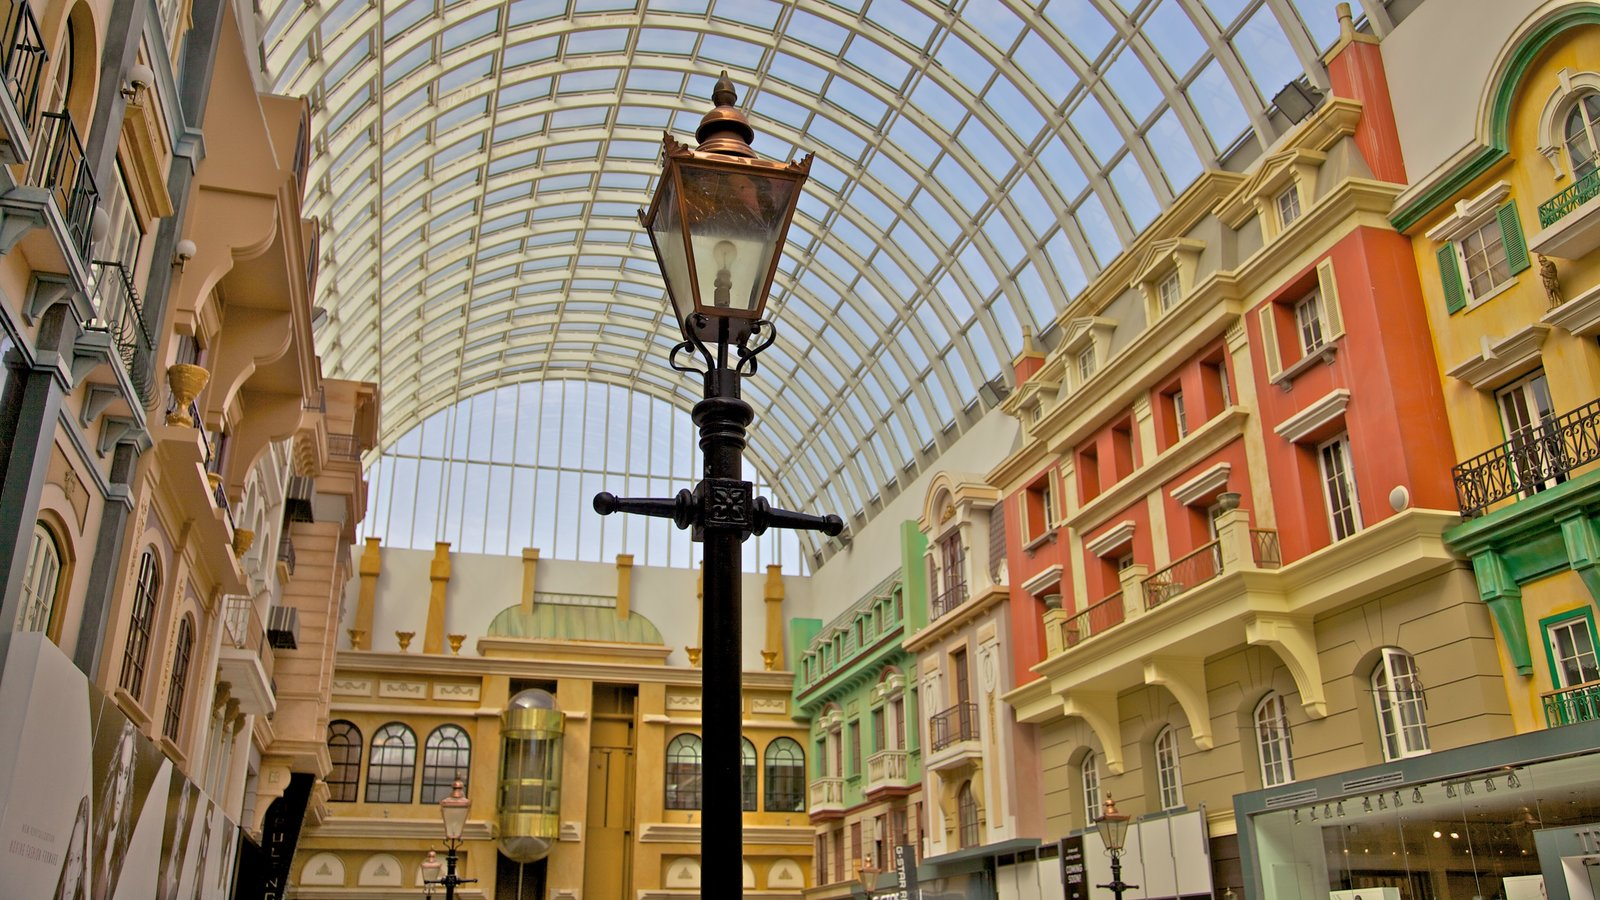 West Edmonton Mall featuring shopping and interior views